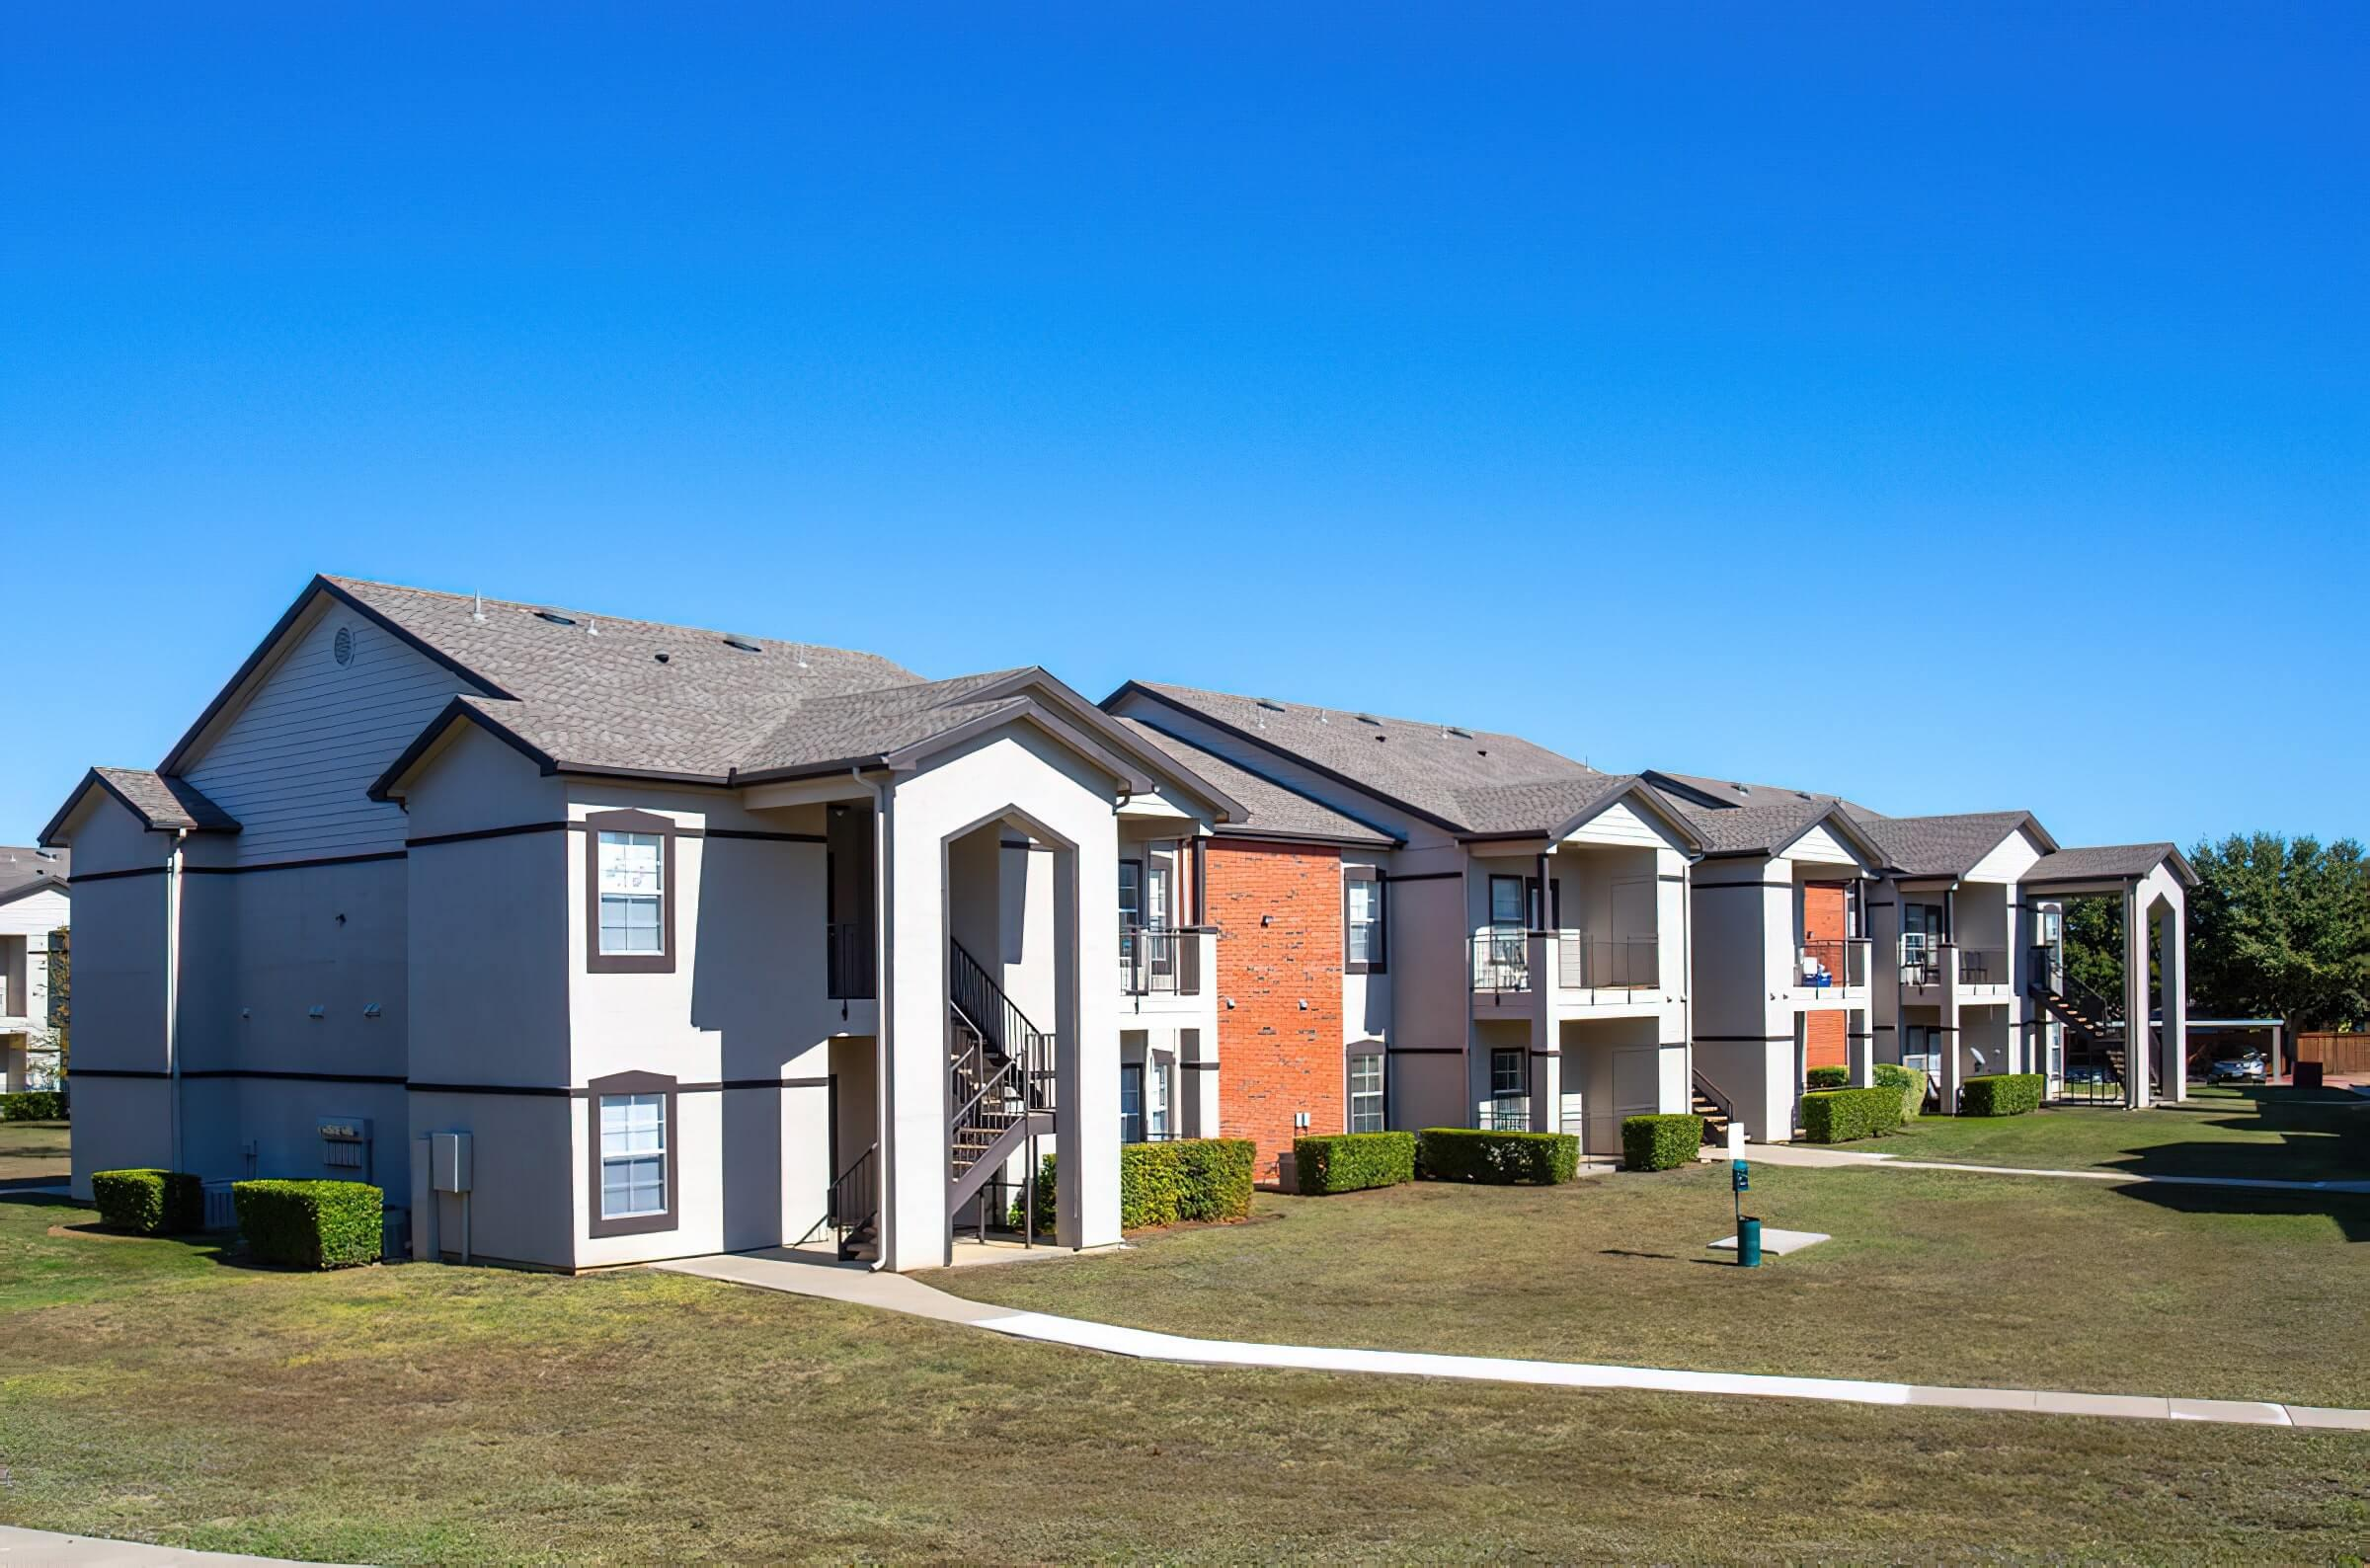 WELCOME HOME TO COOPER GLEN APARTMENTS